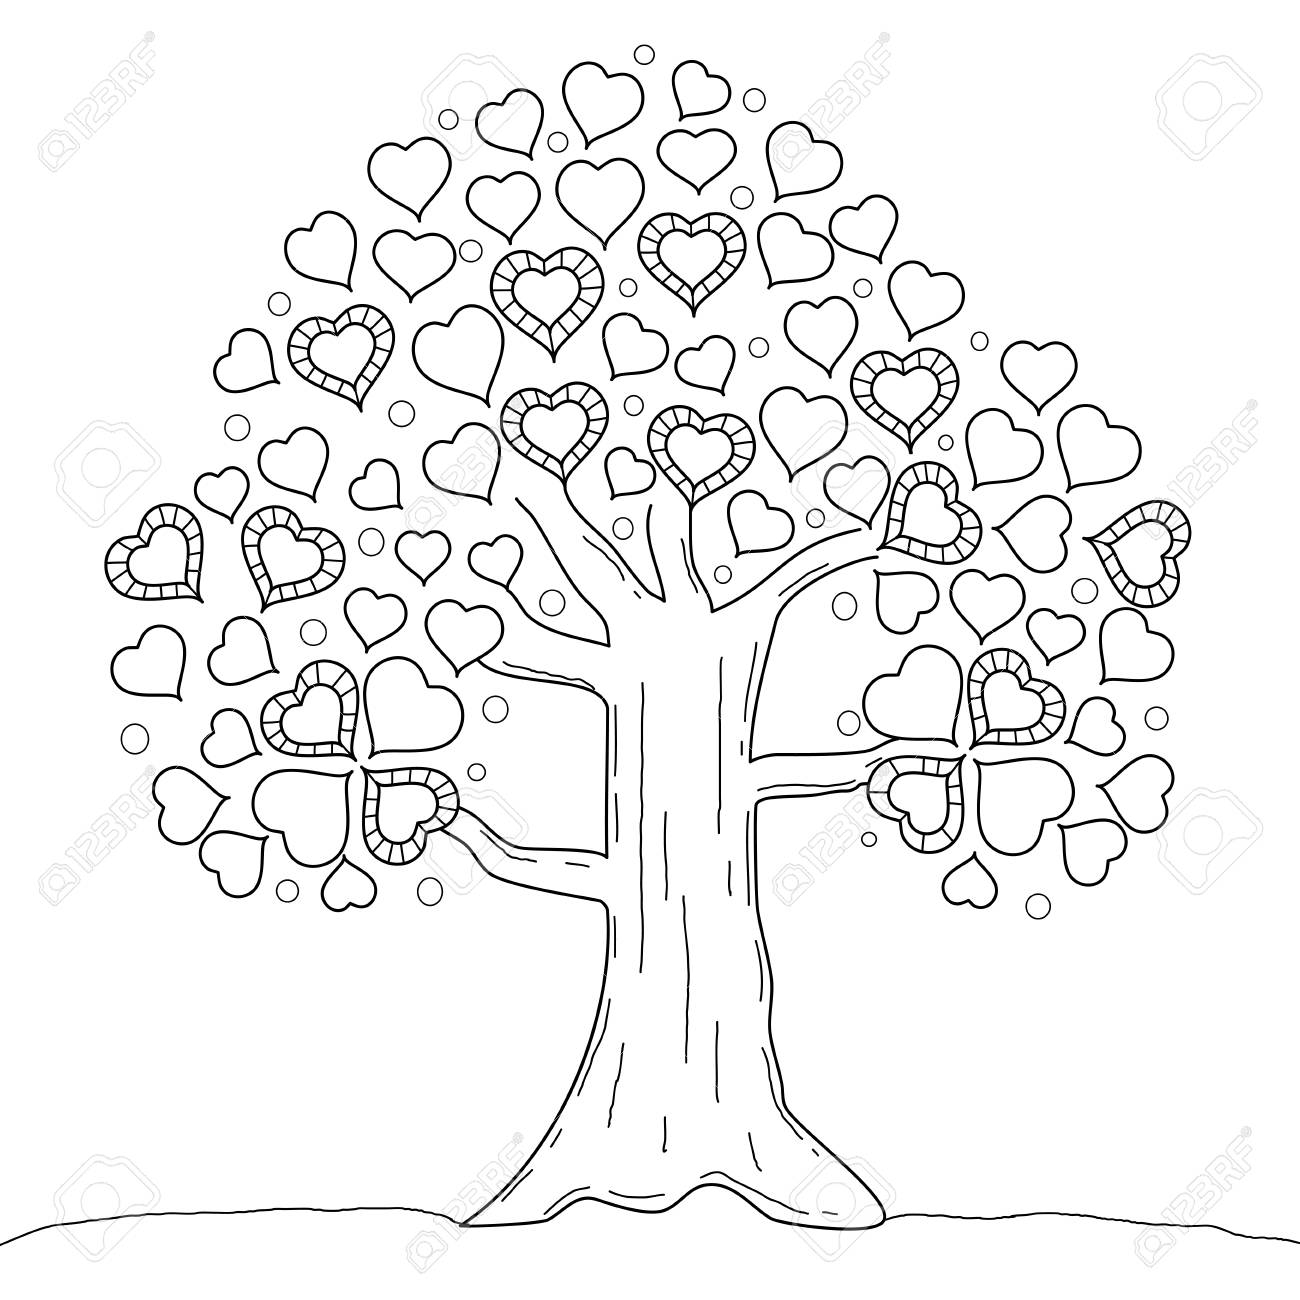 Coloring Book Page Of Tree Heart Valentine S Day Vector Illustration Royalty Free Cliparts Vectors And Stock Illustration Image 100203824